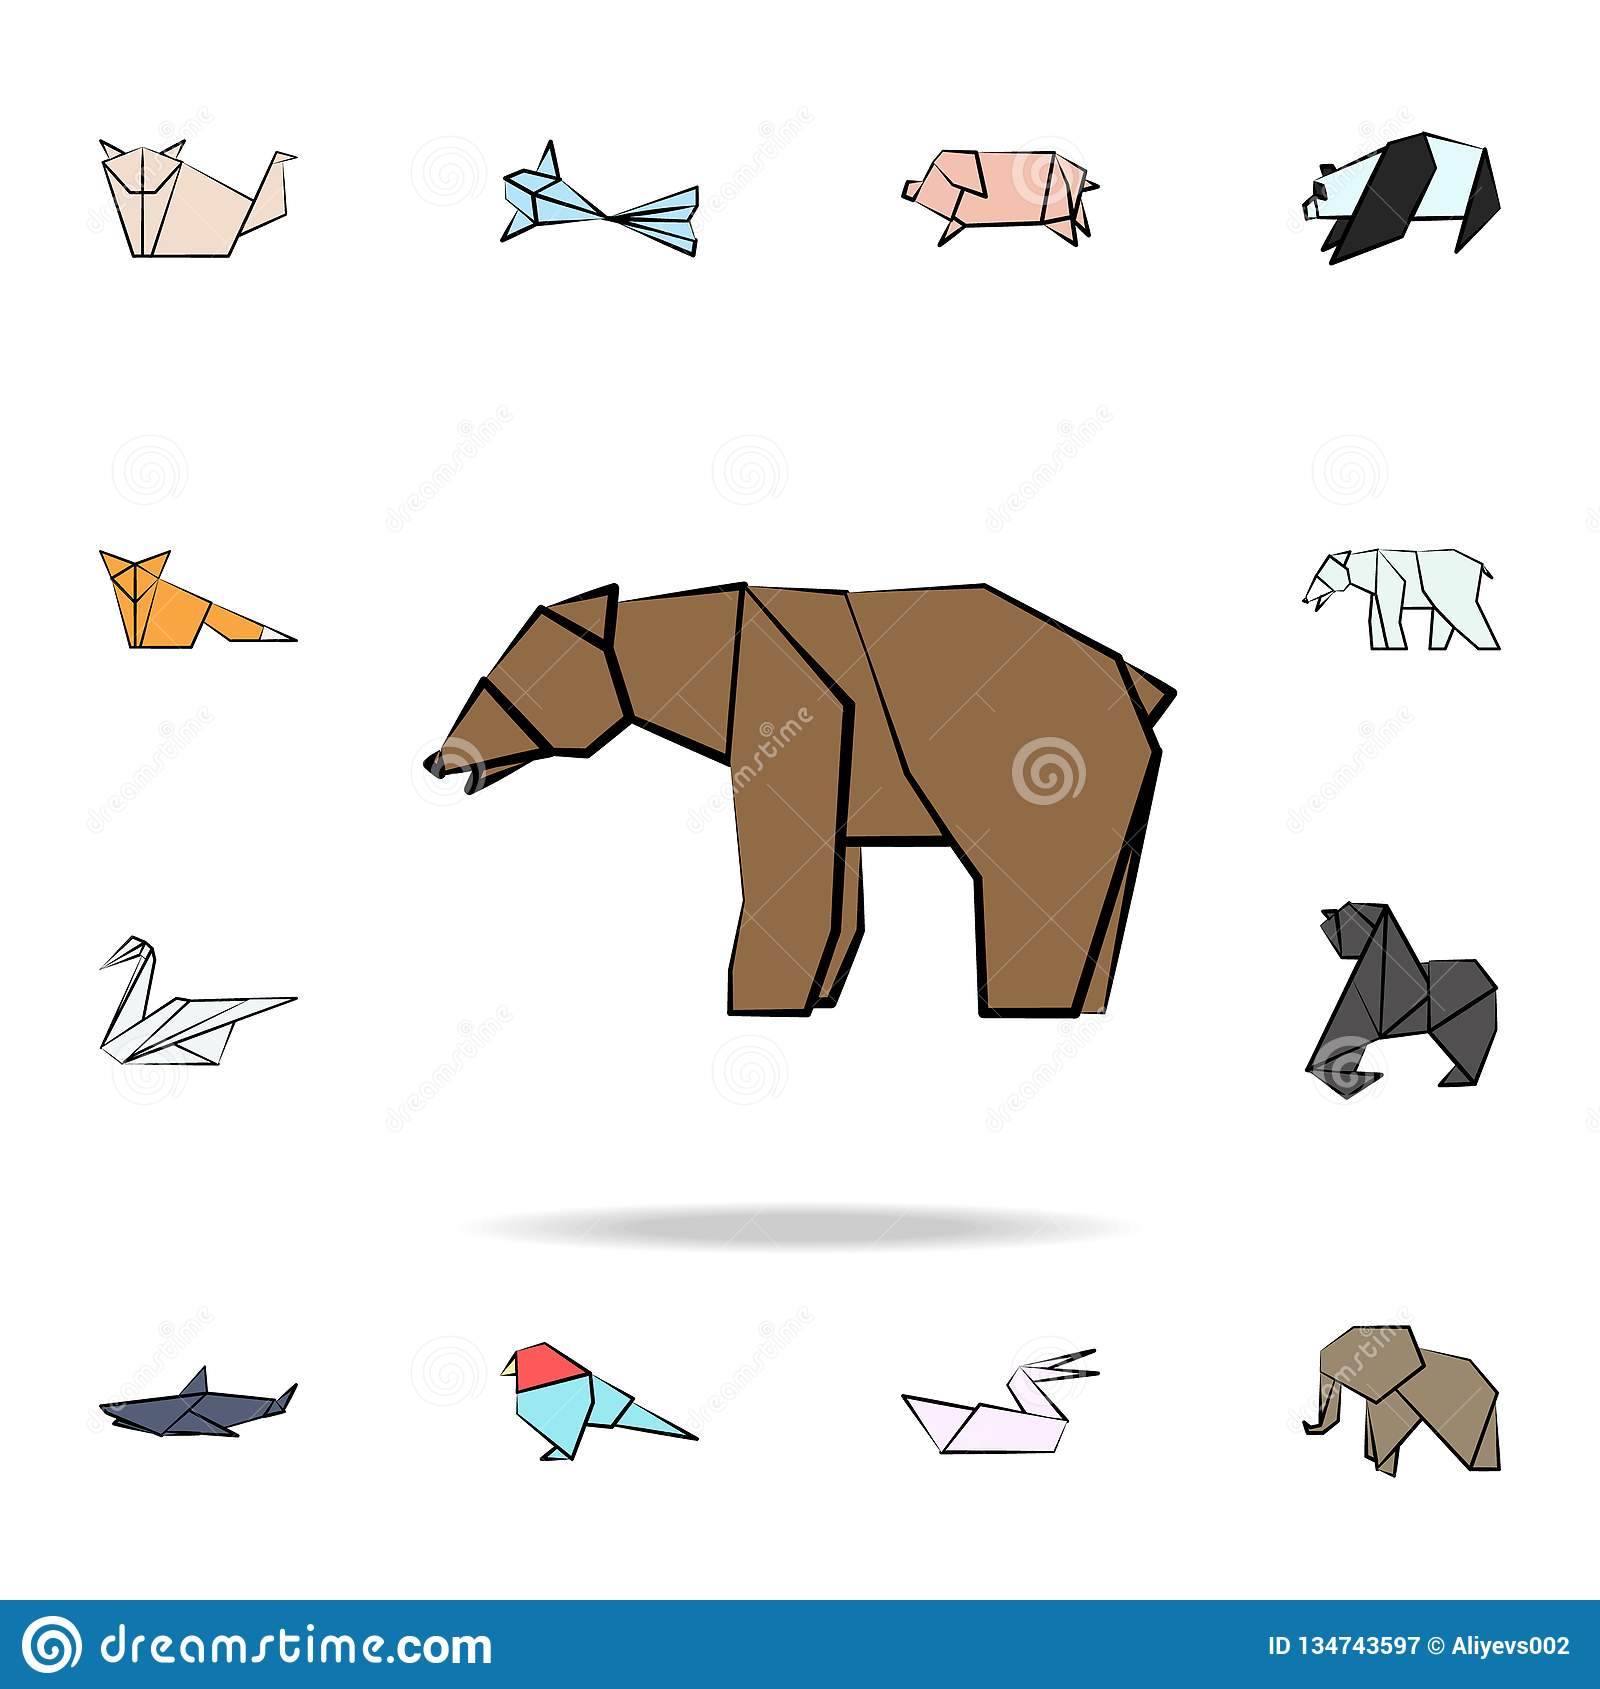 bear colored origami icon. Detailed set of origami animal in hand drawn style icons. Premium graphic design. One of the collection